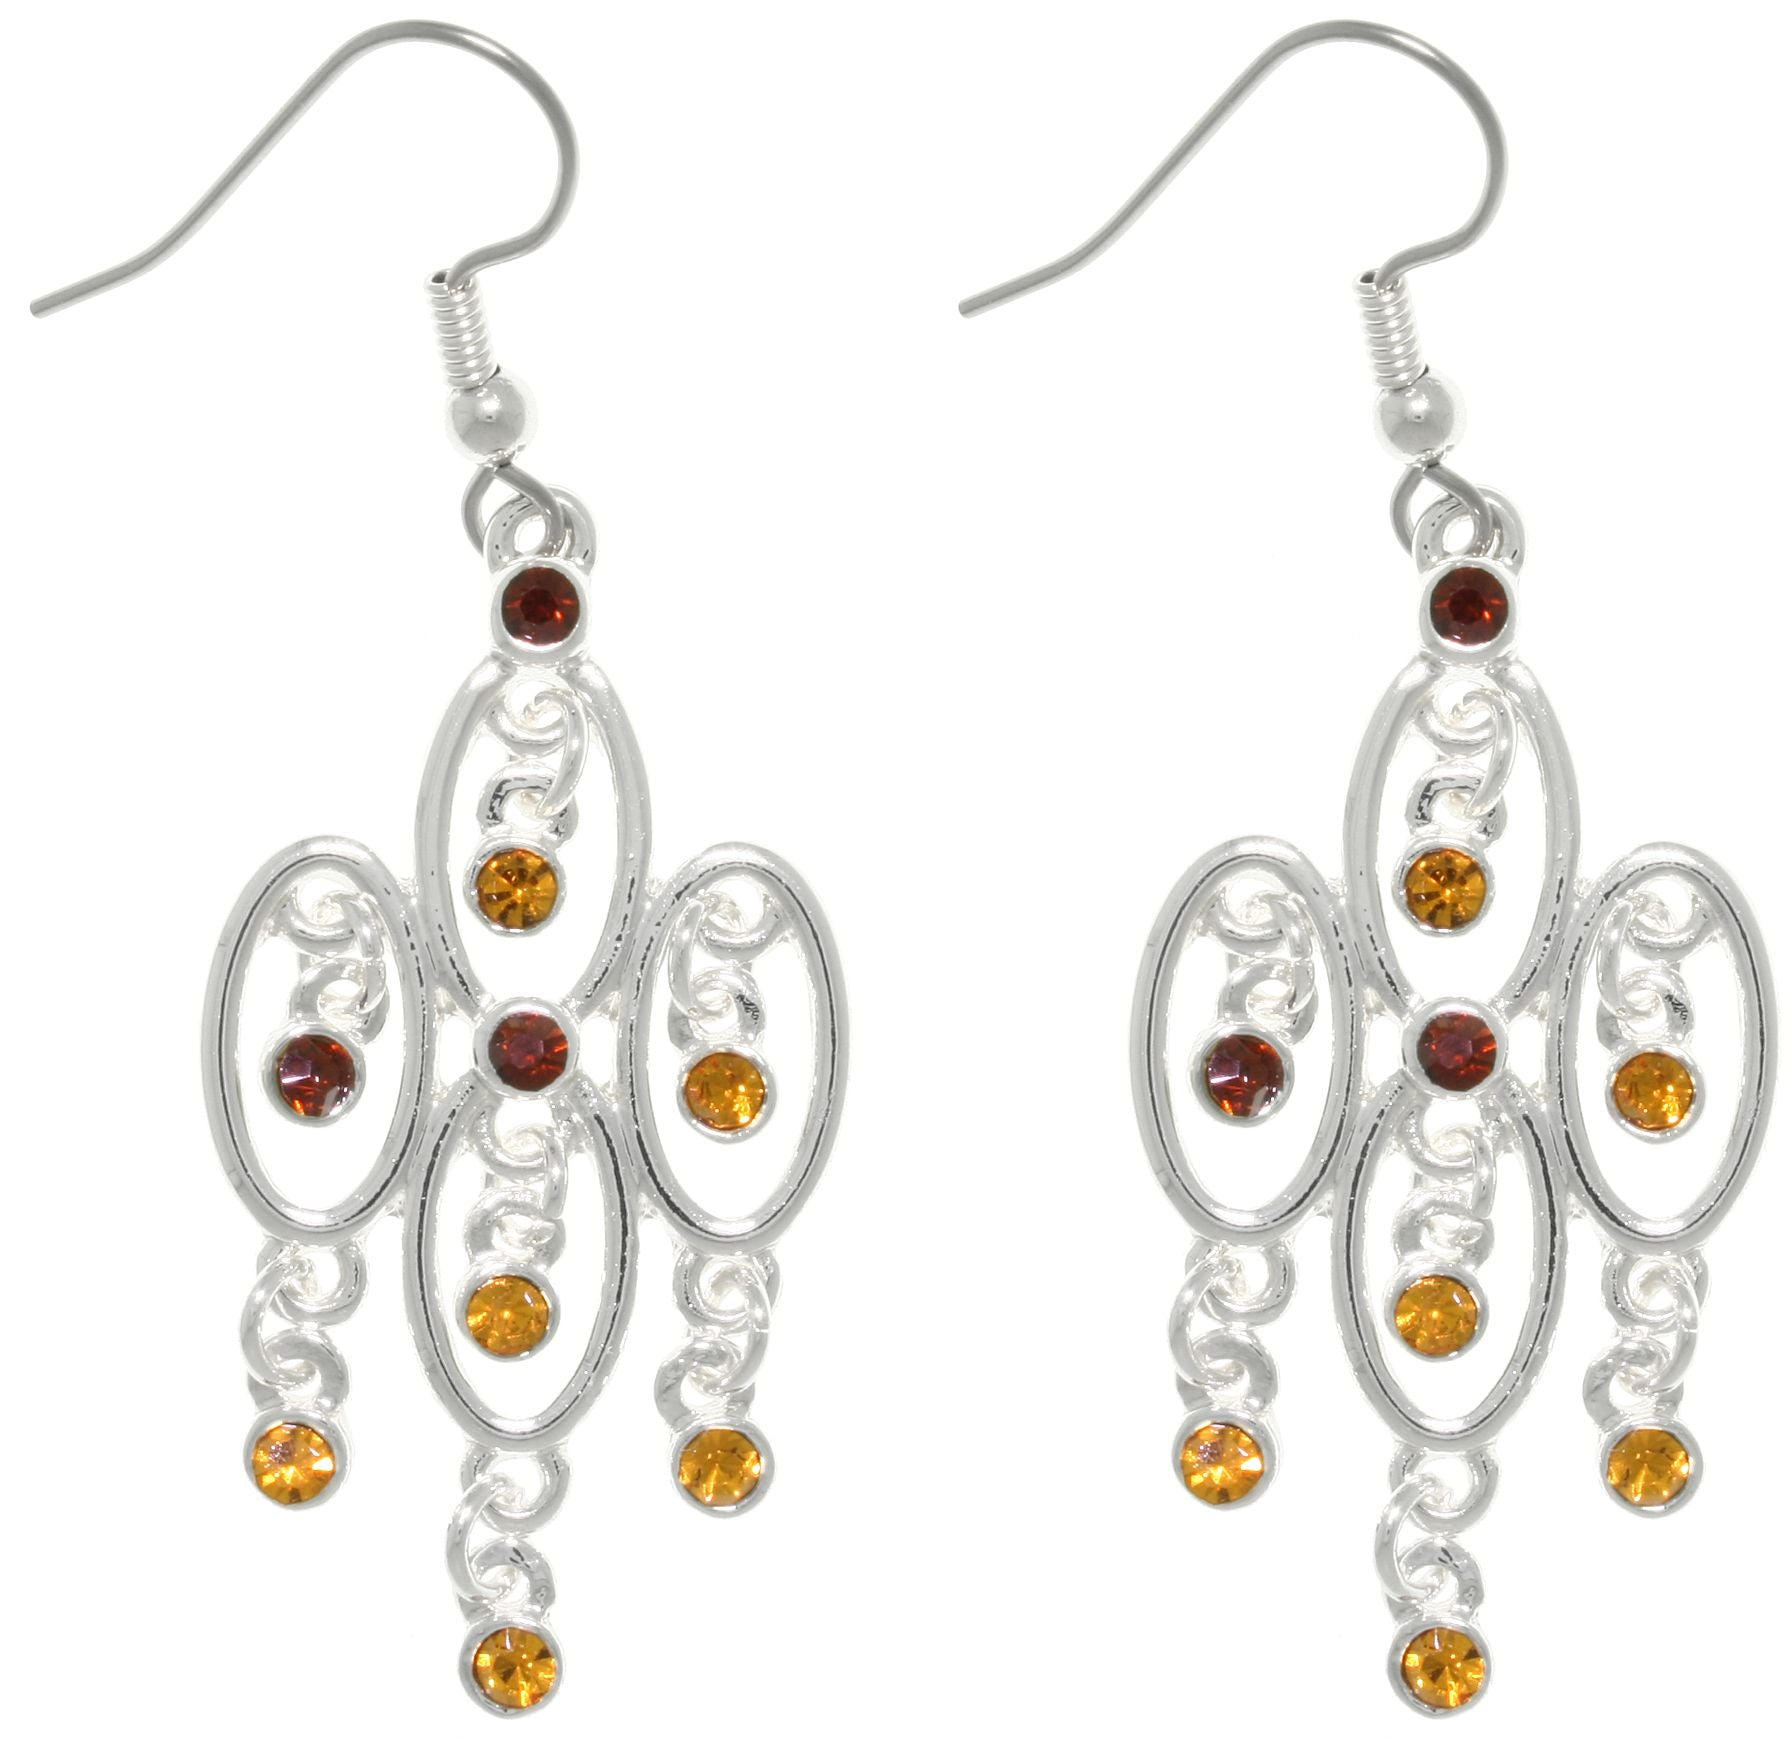 Jewelry Trends Silver Plated Pewter Chandelier Dangle Earrings with Earth Tone Glass Rhinestones